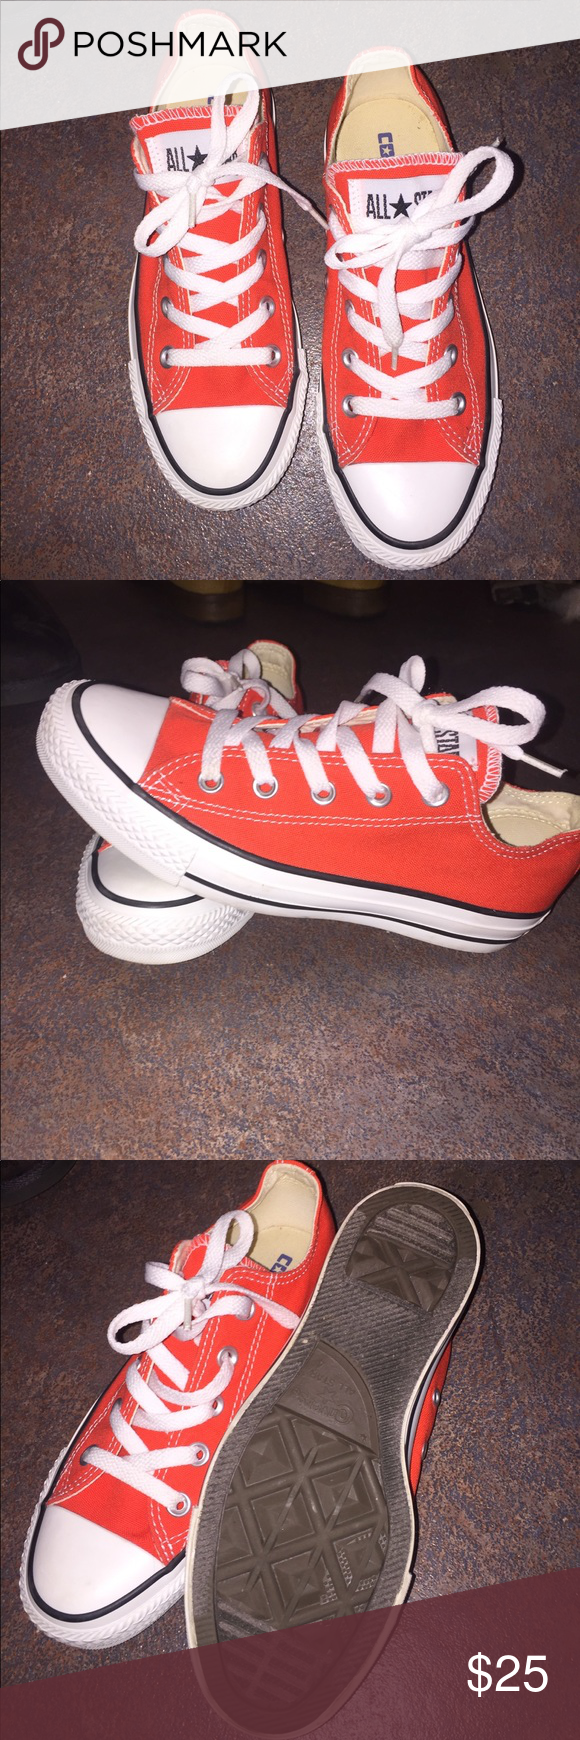 41144379ff8a56 Orange Converse Orange converse. Never worn out of the house. Women s size  6 men s size 4. Perfect condition. Converse Shoes Sneakers